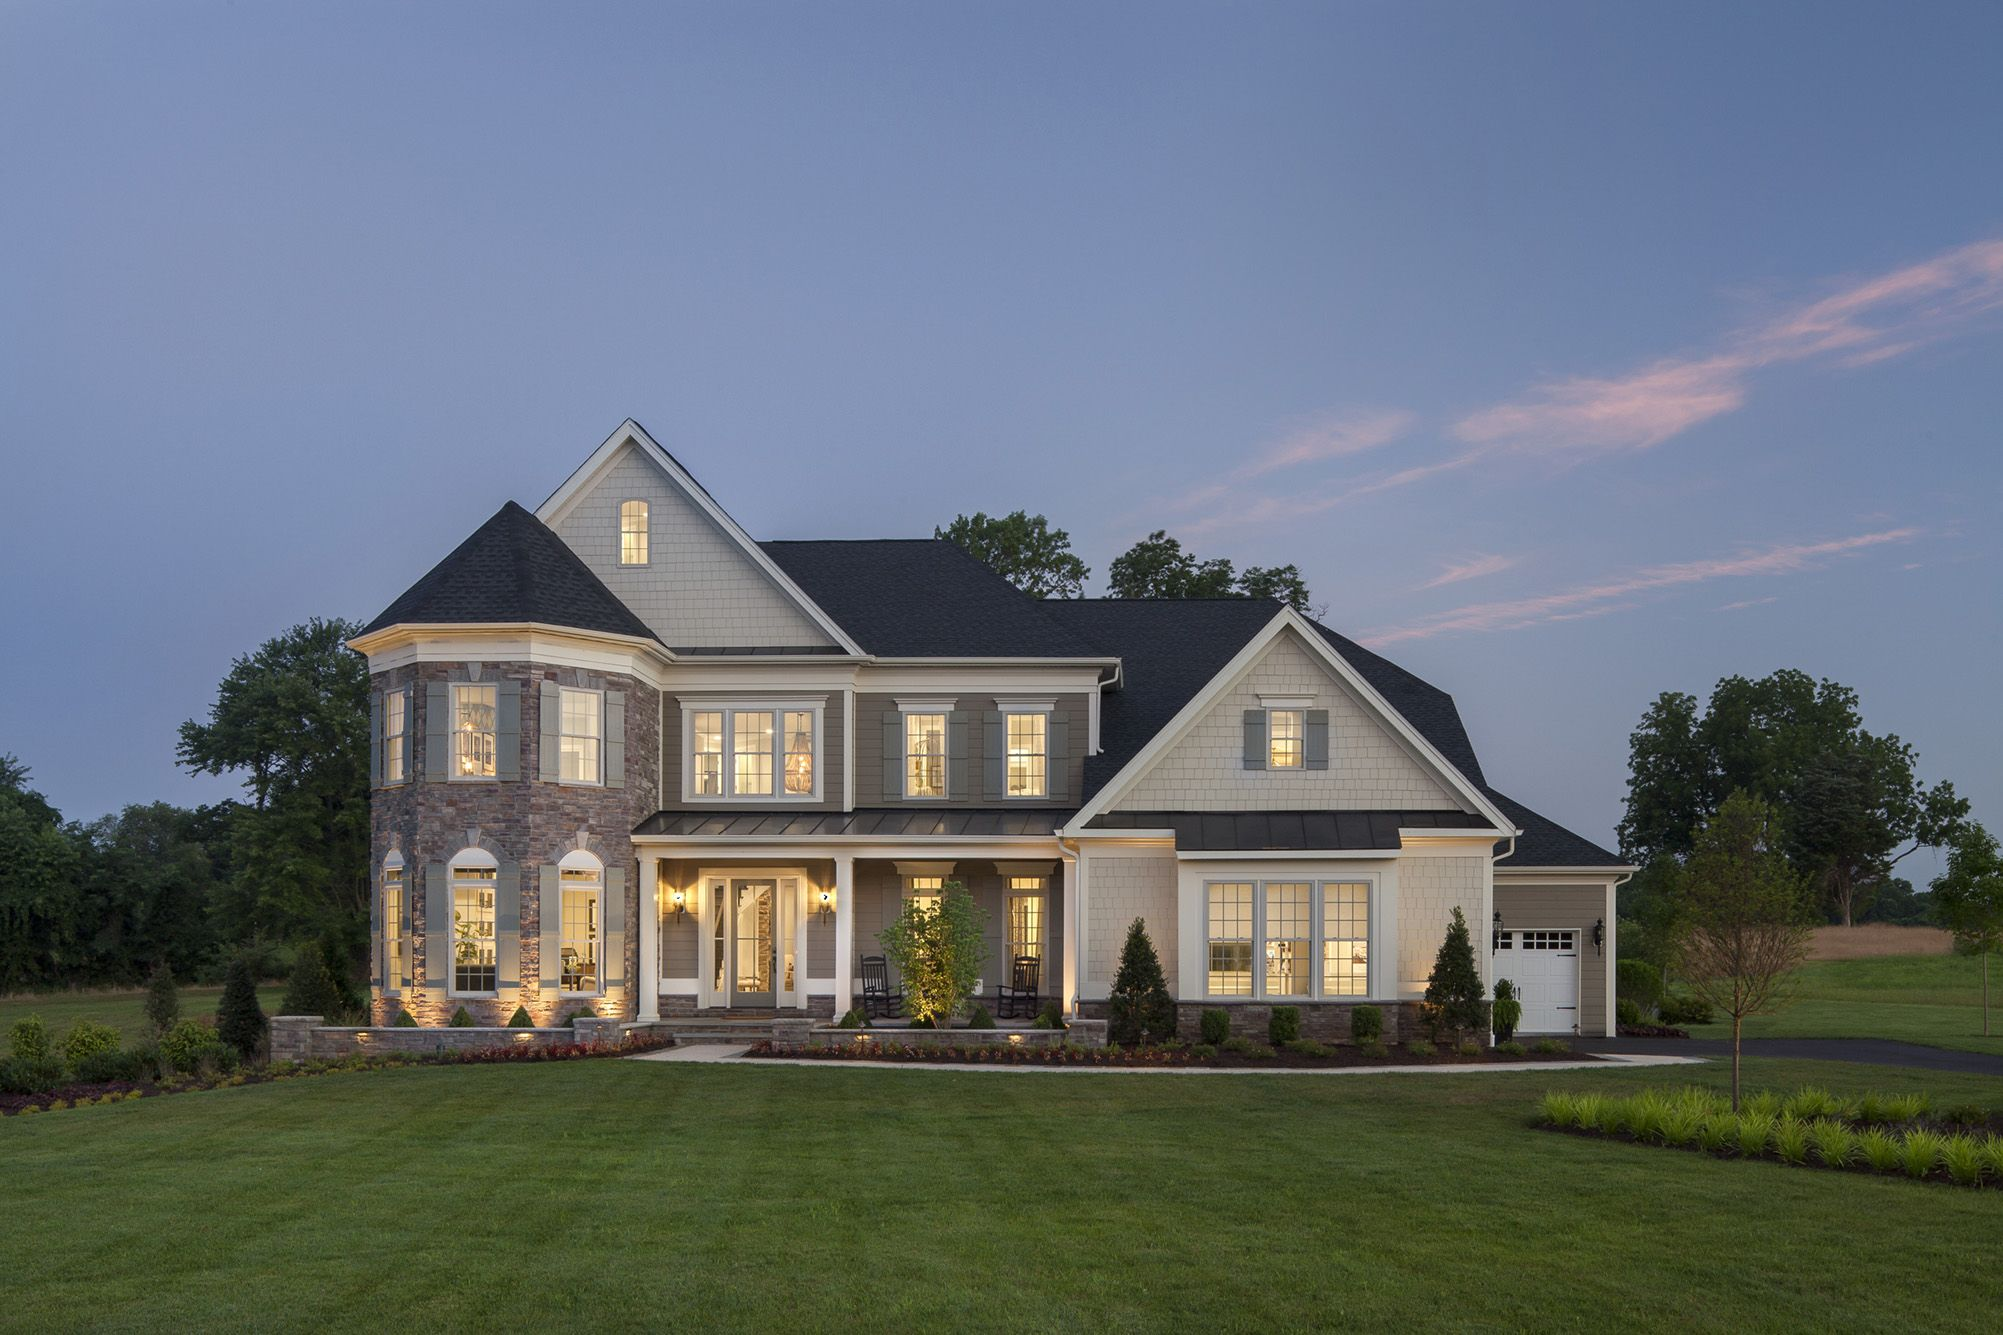 Large Volume Builder Single Family Detached 1 9 Million 1 99 Million Company Toll Brothers Model Ridgeview Le Sale House Toll Brothers New Home Designs